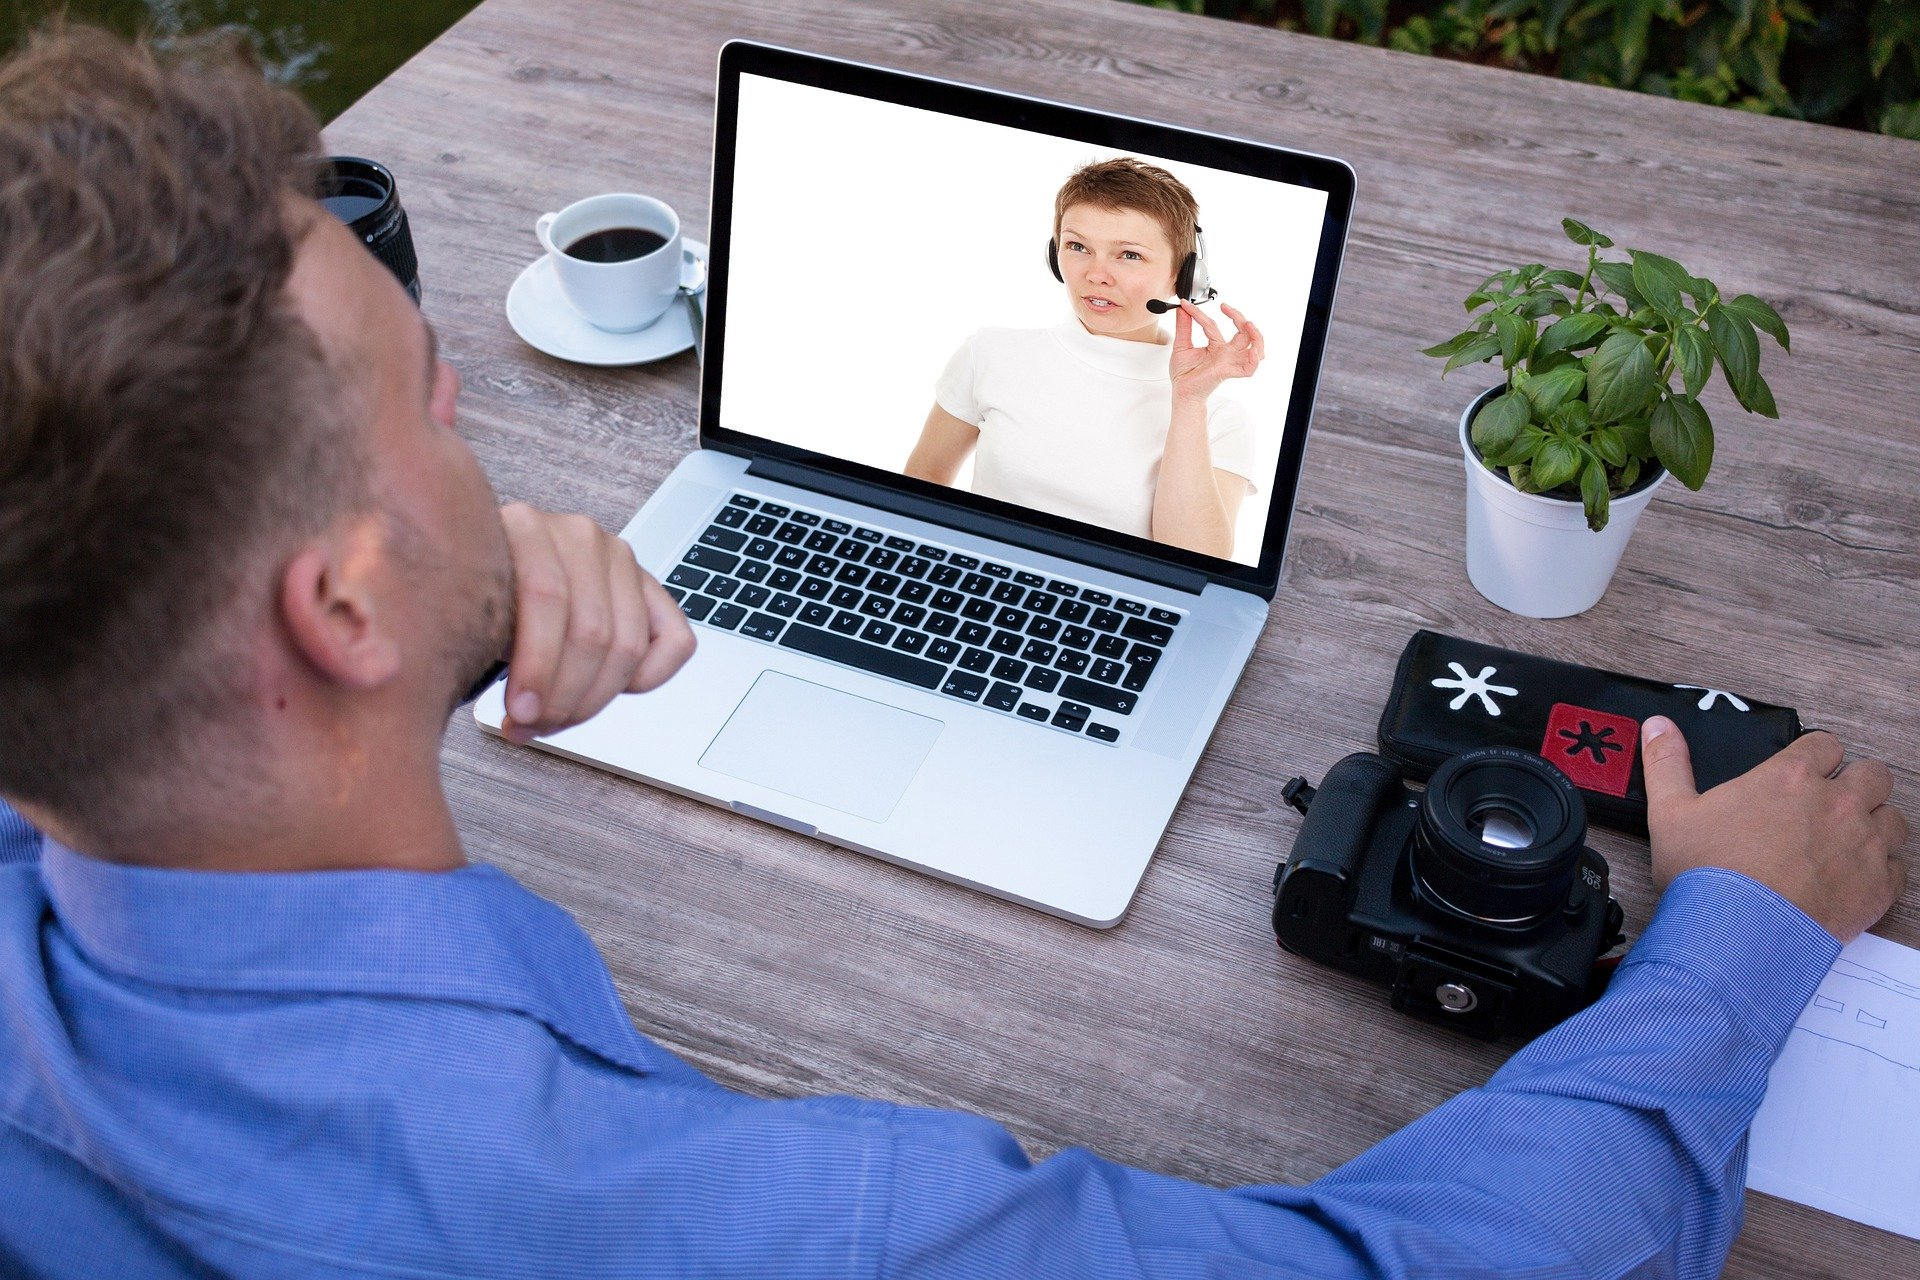 webinar, virtual meeting, video conference